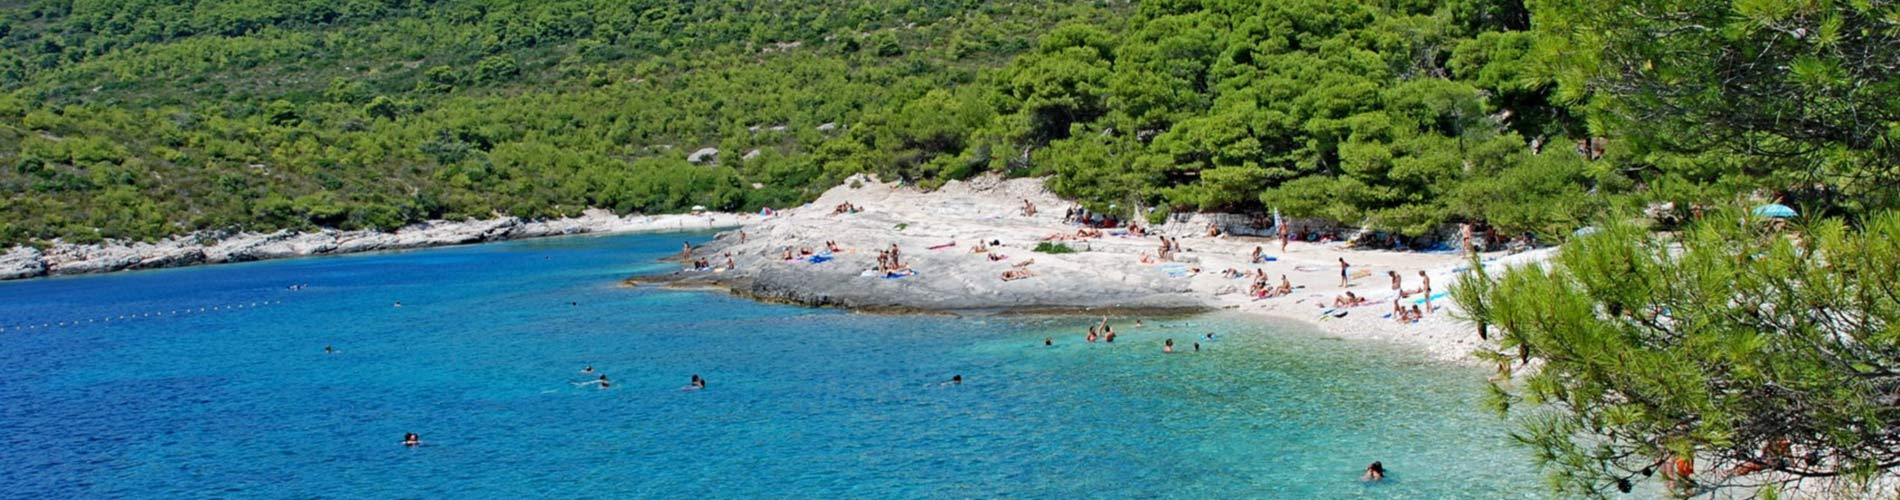 vis island sea swim croatia holidays.jpg